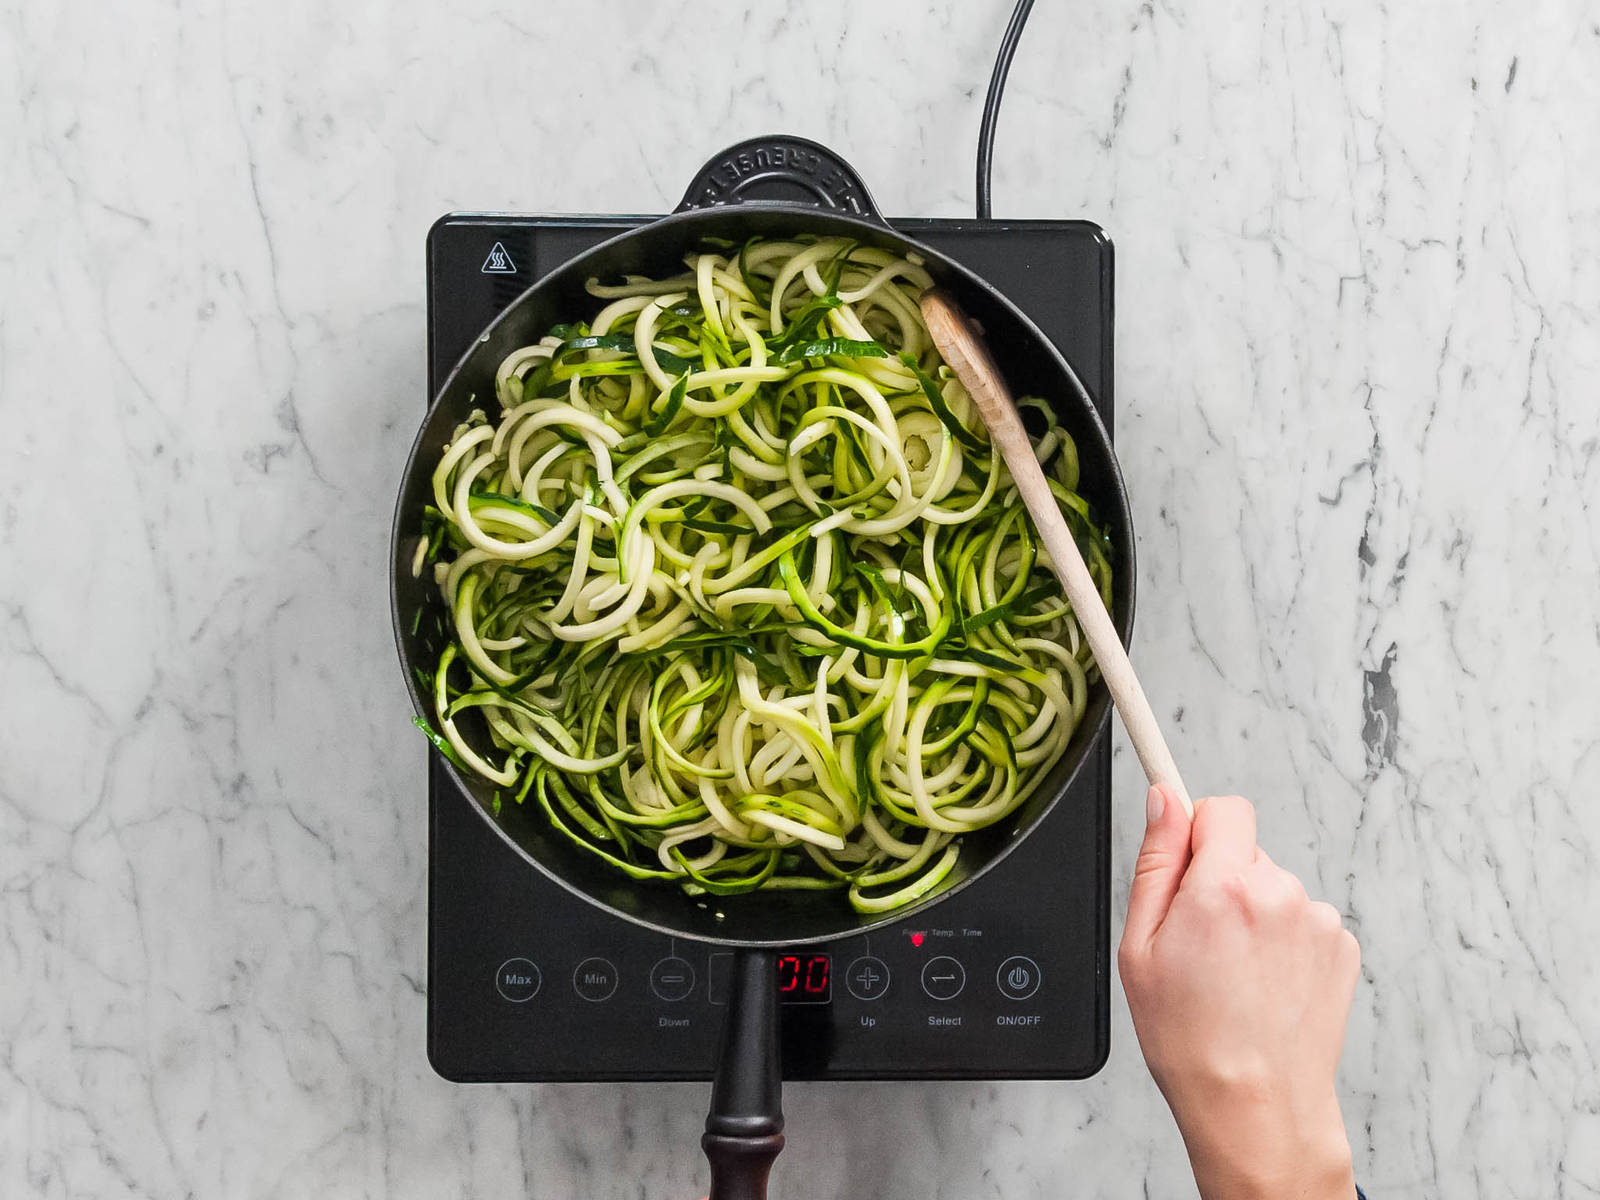 Heat oil in frying pan over medium-high heat; add zucchini and cook, stirring occasionally, for 2 – 3 min., or until softened. Add cauliflower Alfredo sauce and toss gently to coat. Season with salt and pepper if desired. Top with additional cheese and parsley for serving. Enjoy!